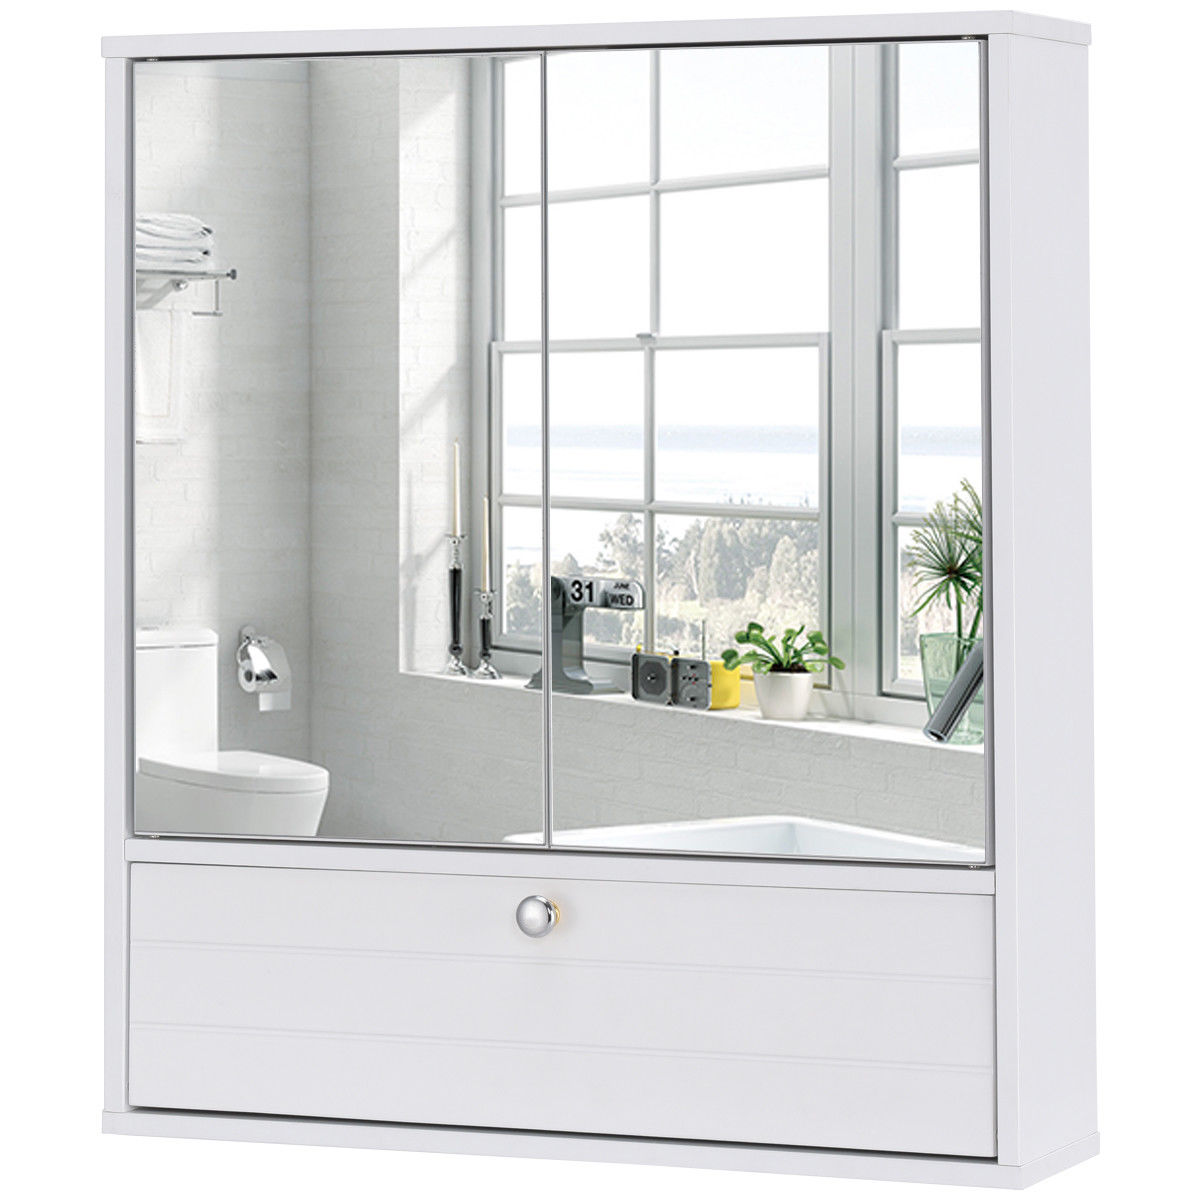 Costway Bathroom Cabinet Double Mirror Door Wall Mount Storage Wood Shelf White